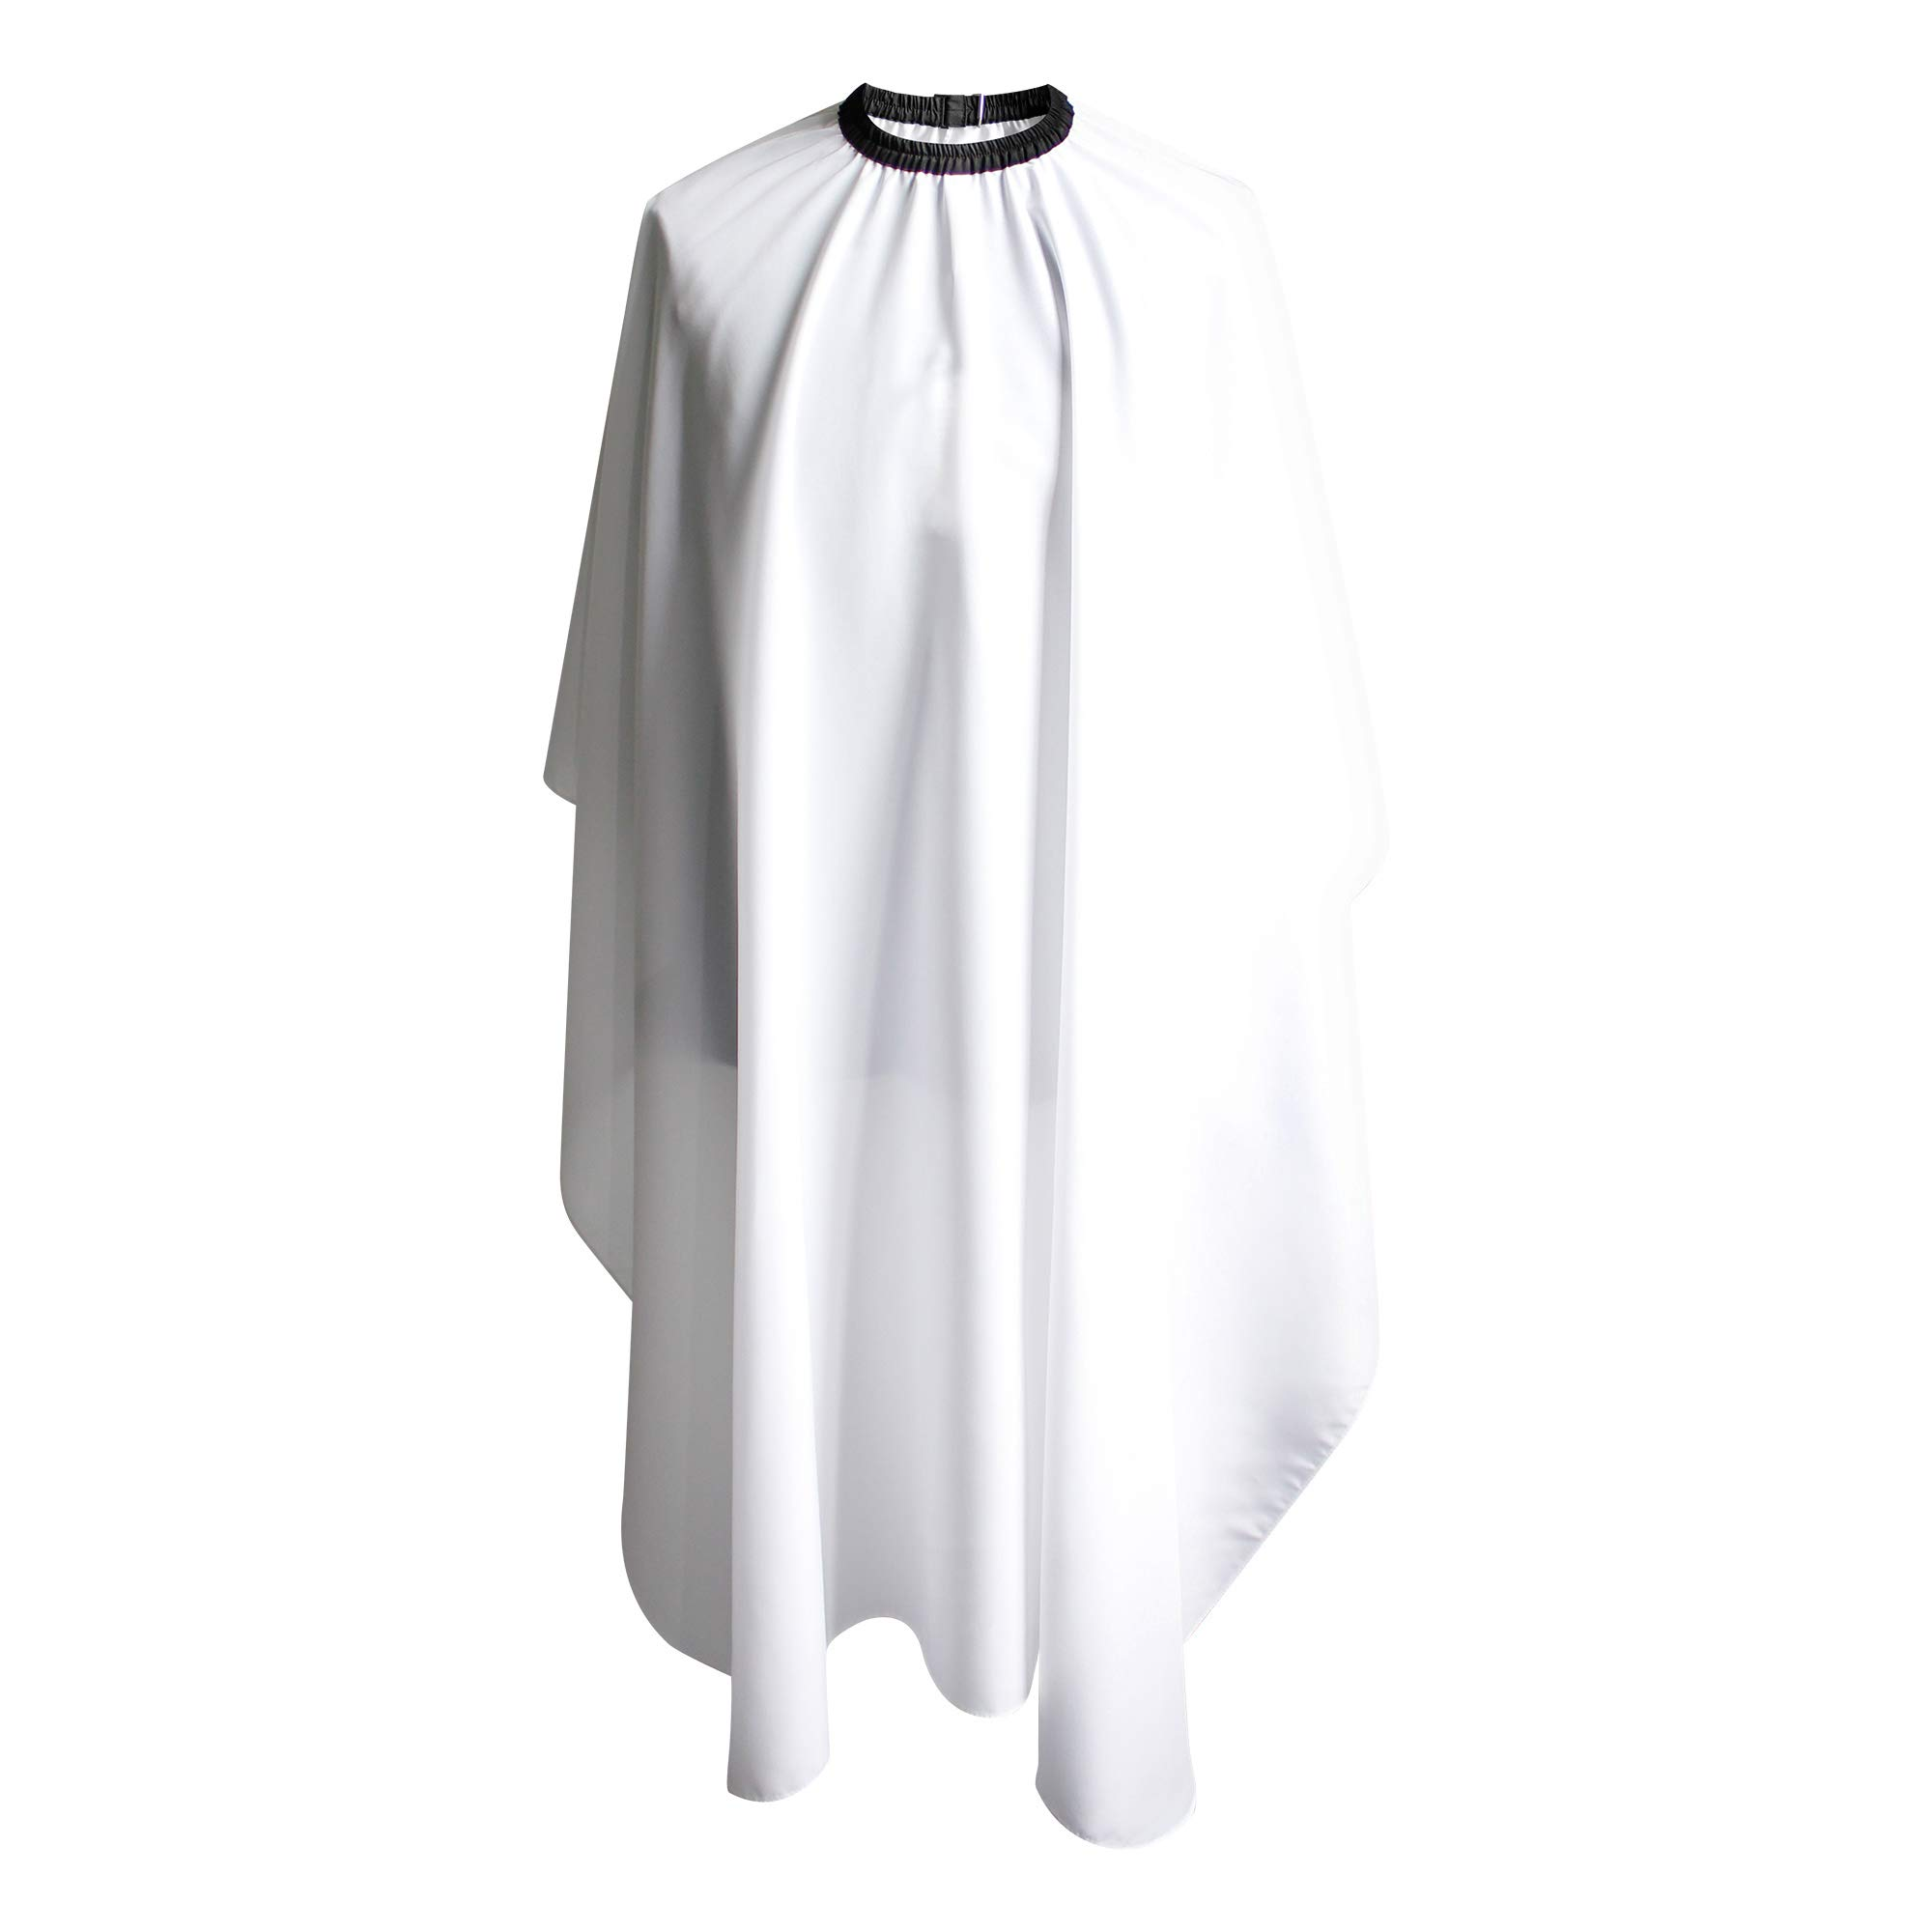 SMARTHAIR Professional Salon Cape Polyester Haircut Apron Hair Cut Cape,54''x62'',White,C026005B by SMARTHAIR